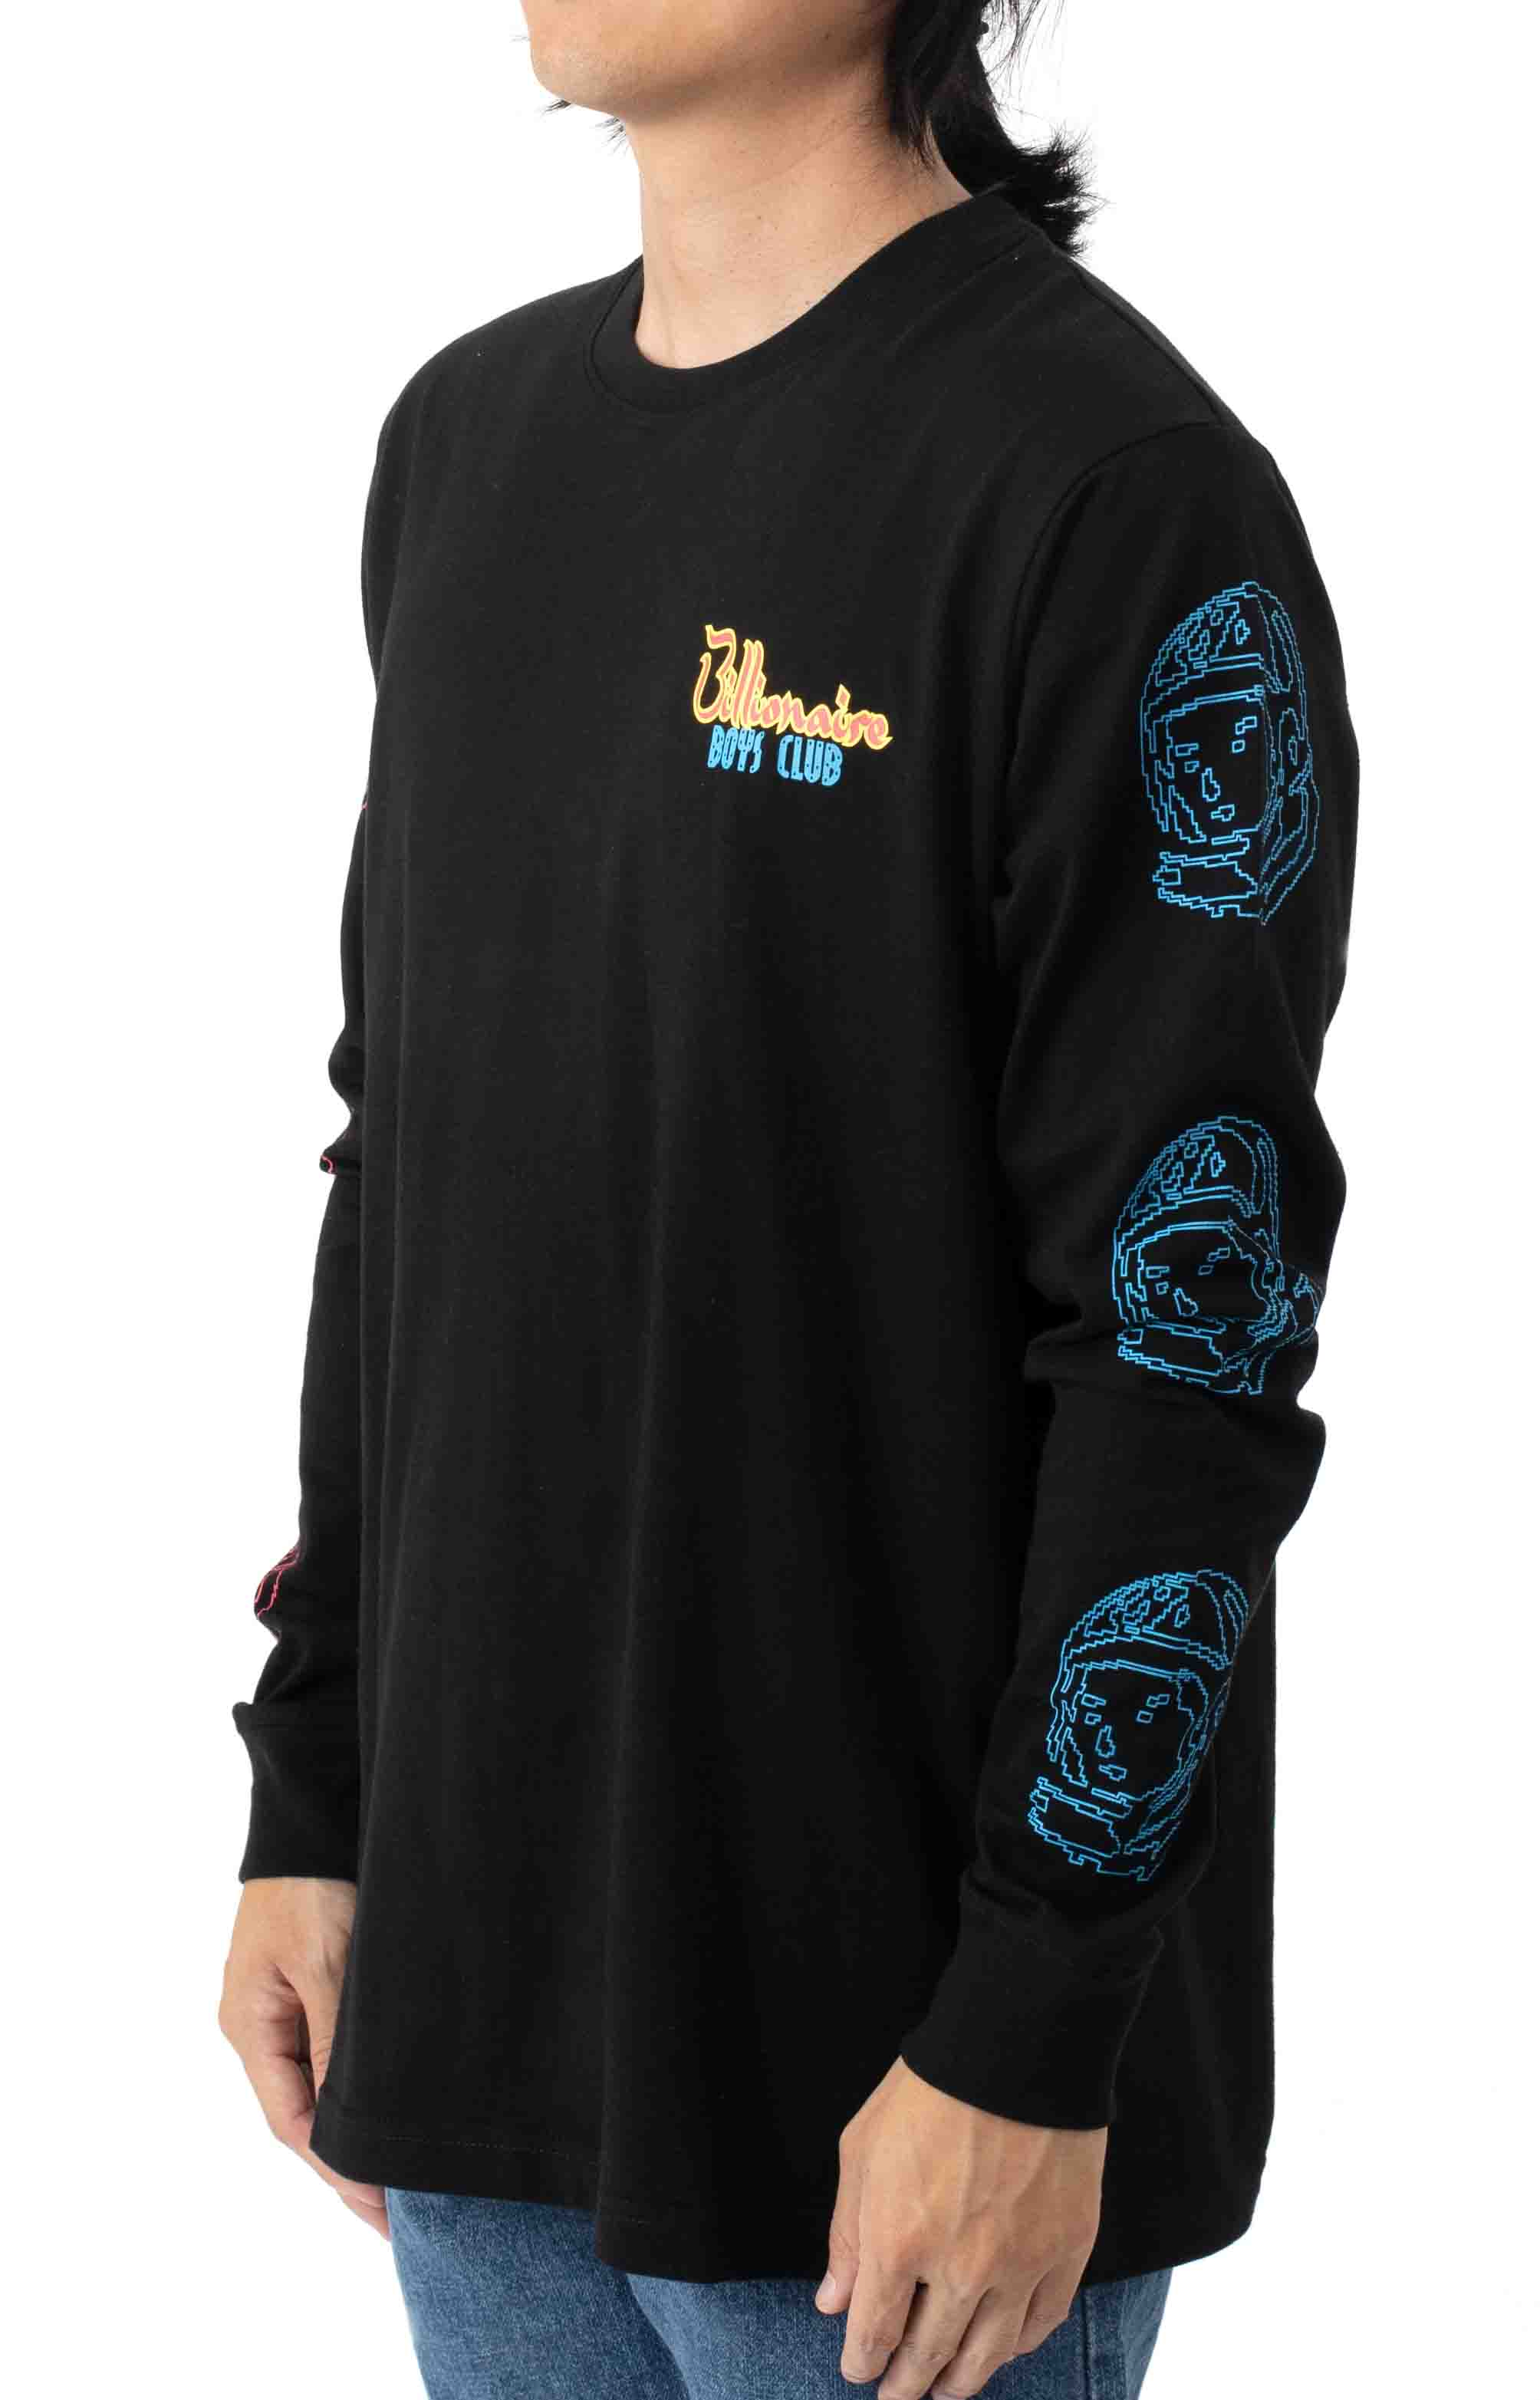 Heart and Mind L/S Shirt - Black  3